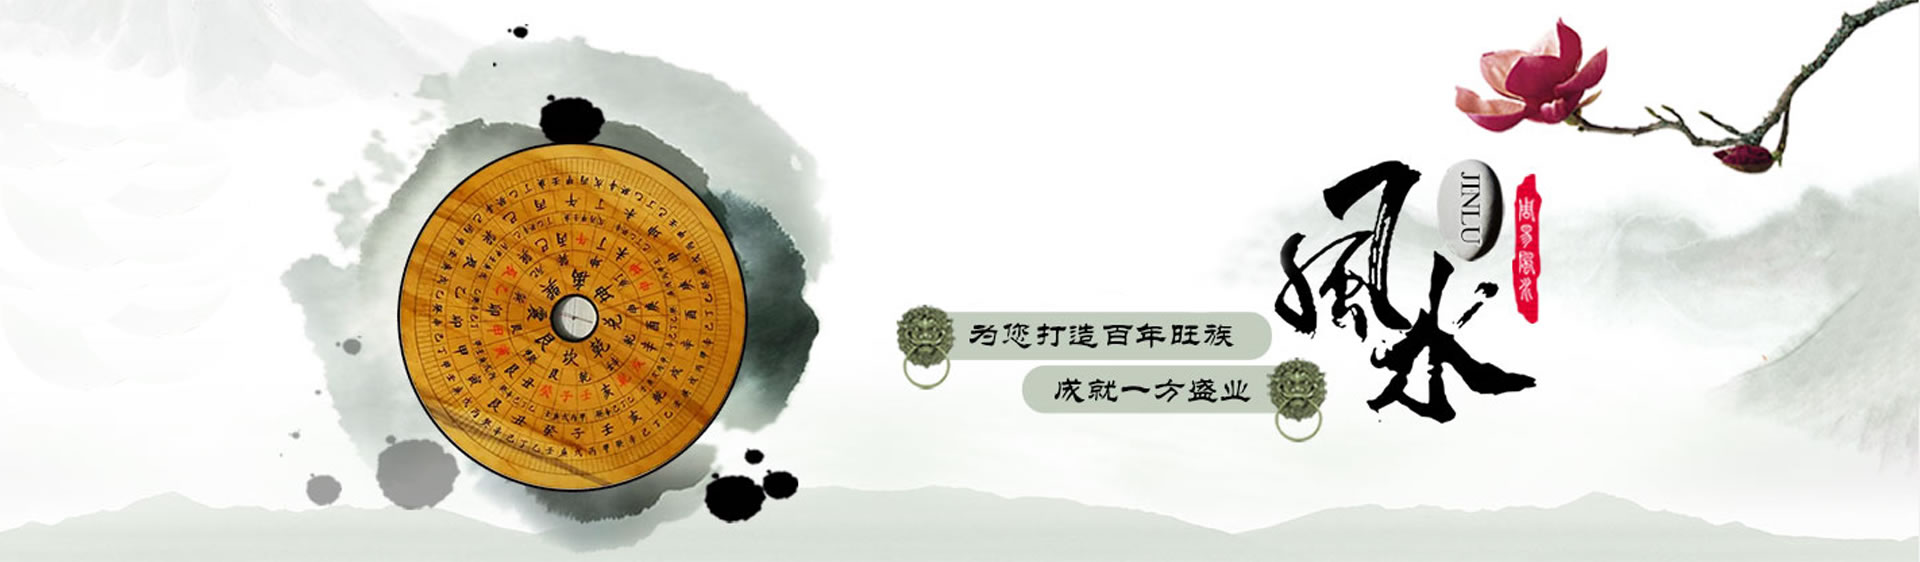 banner动画